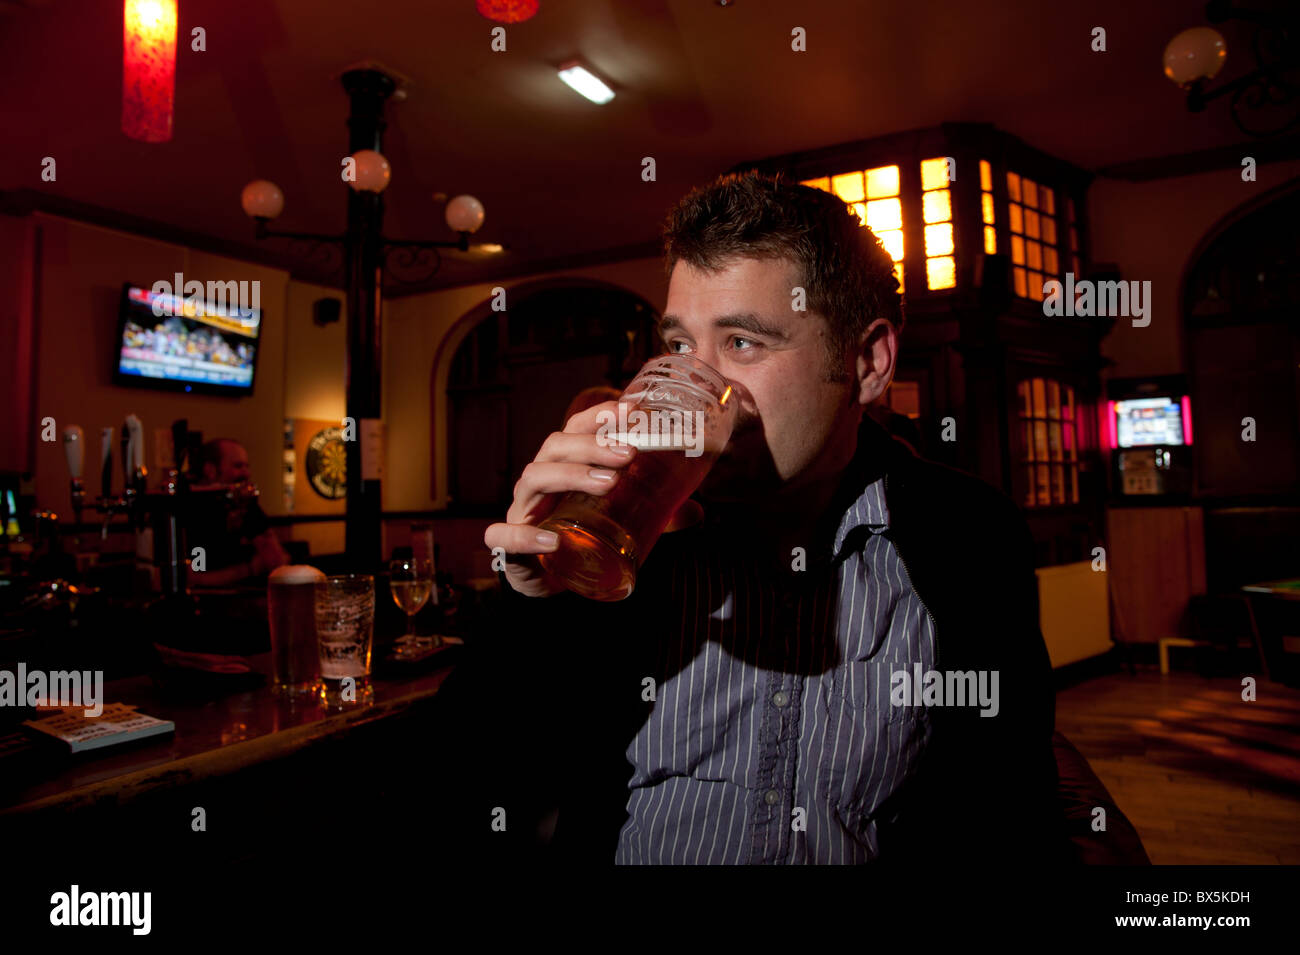 A man drinking a pint of beer in a pub, UK - Stock Image